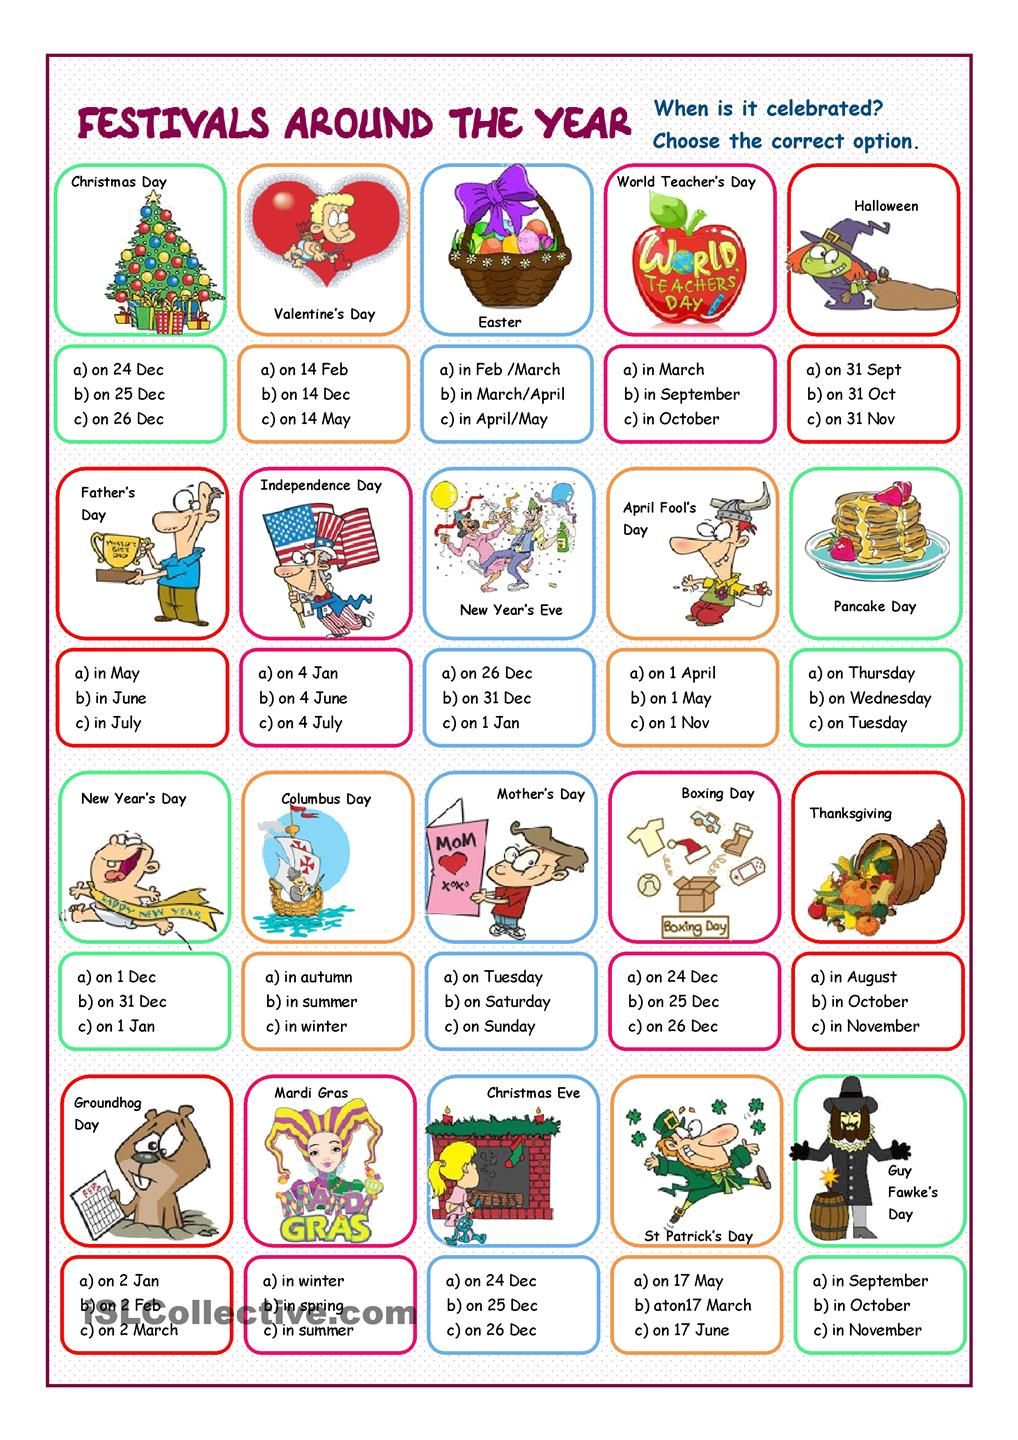 Festivals Around the Year Multiple Choice Holiday